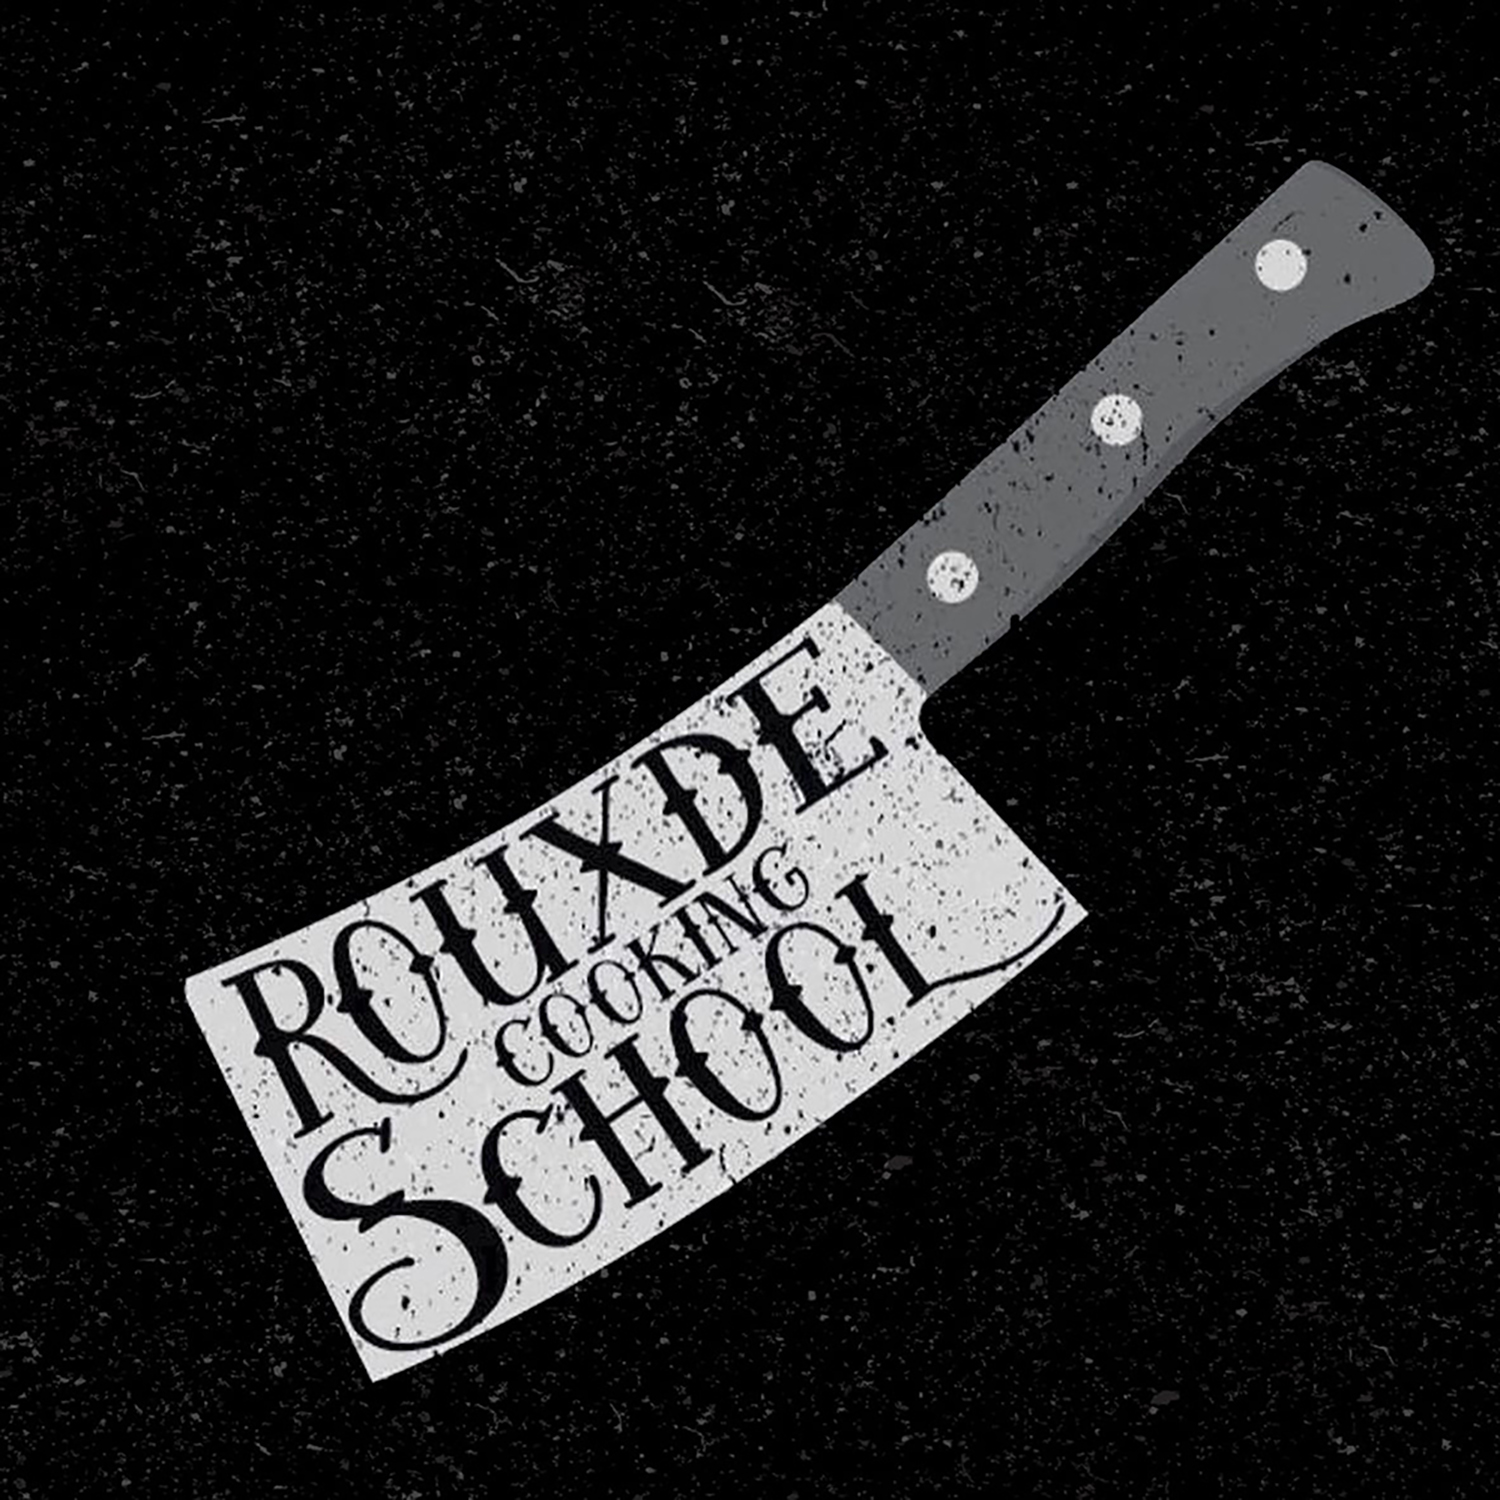 The Rouxde Cooking School Podcast show art